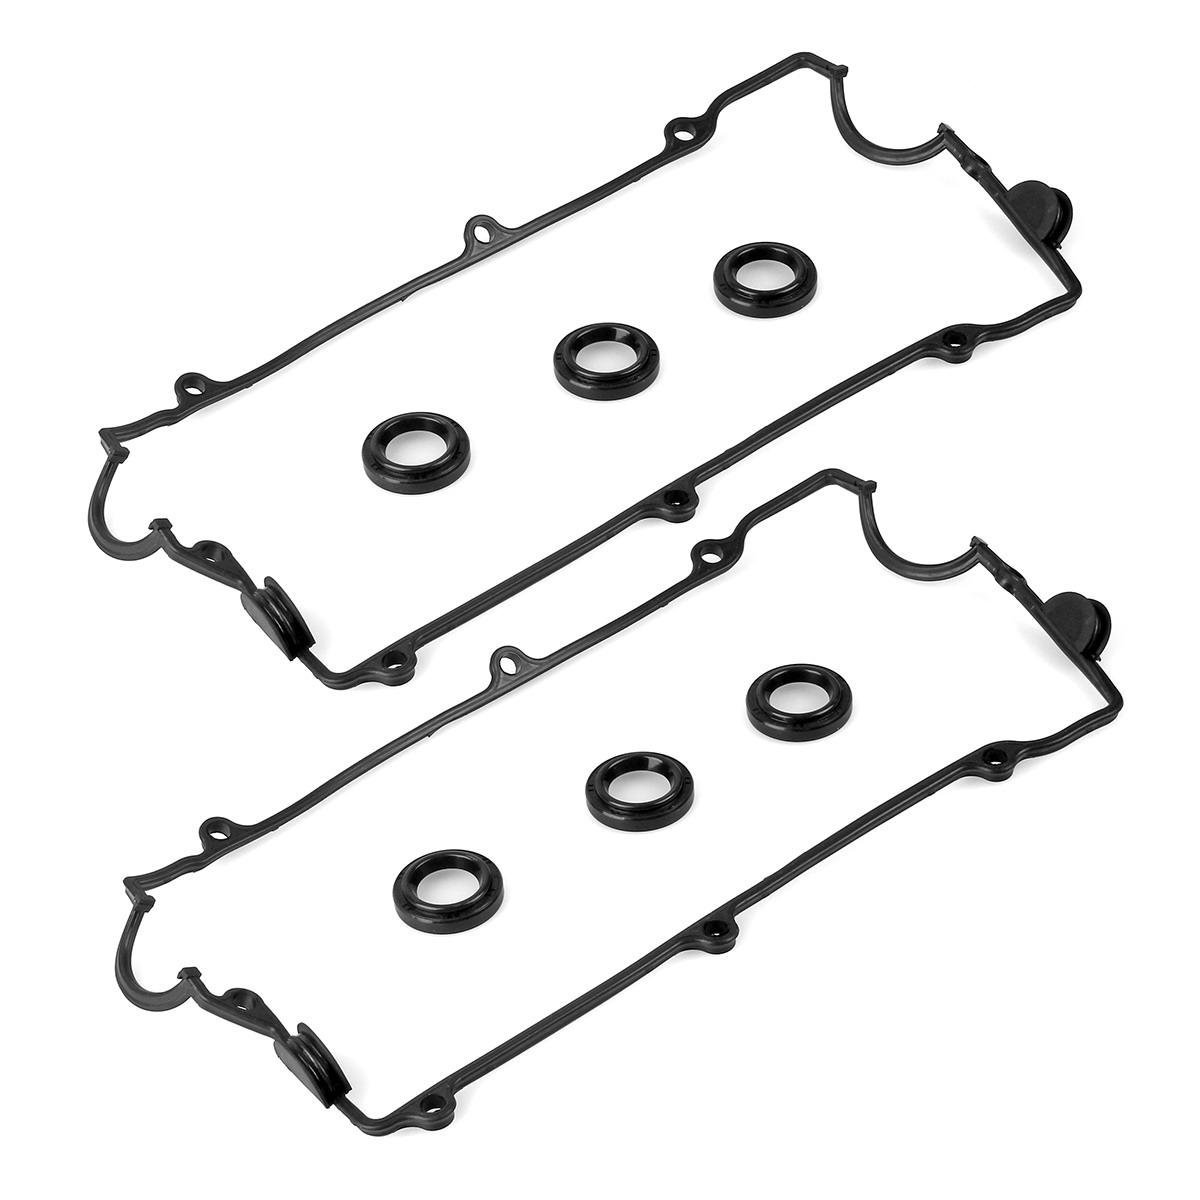 Vincos Engine Valve Cover Gasket Set Replacement For HYUNDAI SANTA FE 2.7L DOHC V6 24V